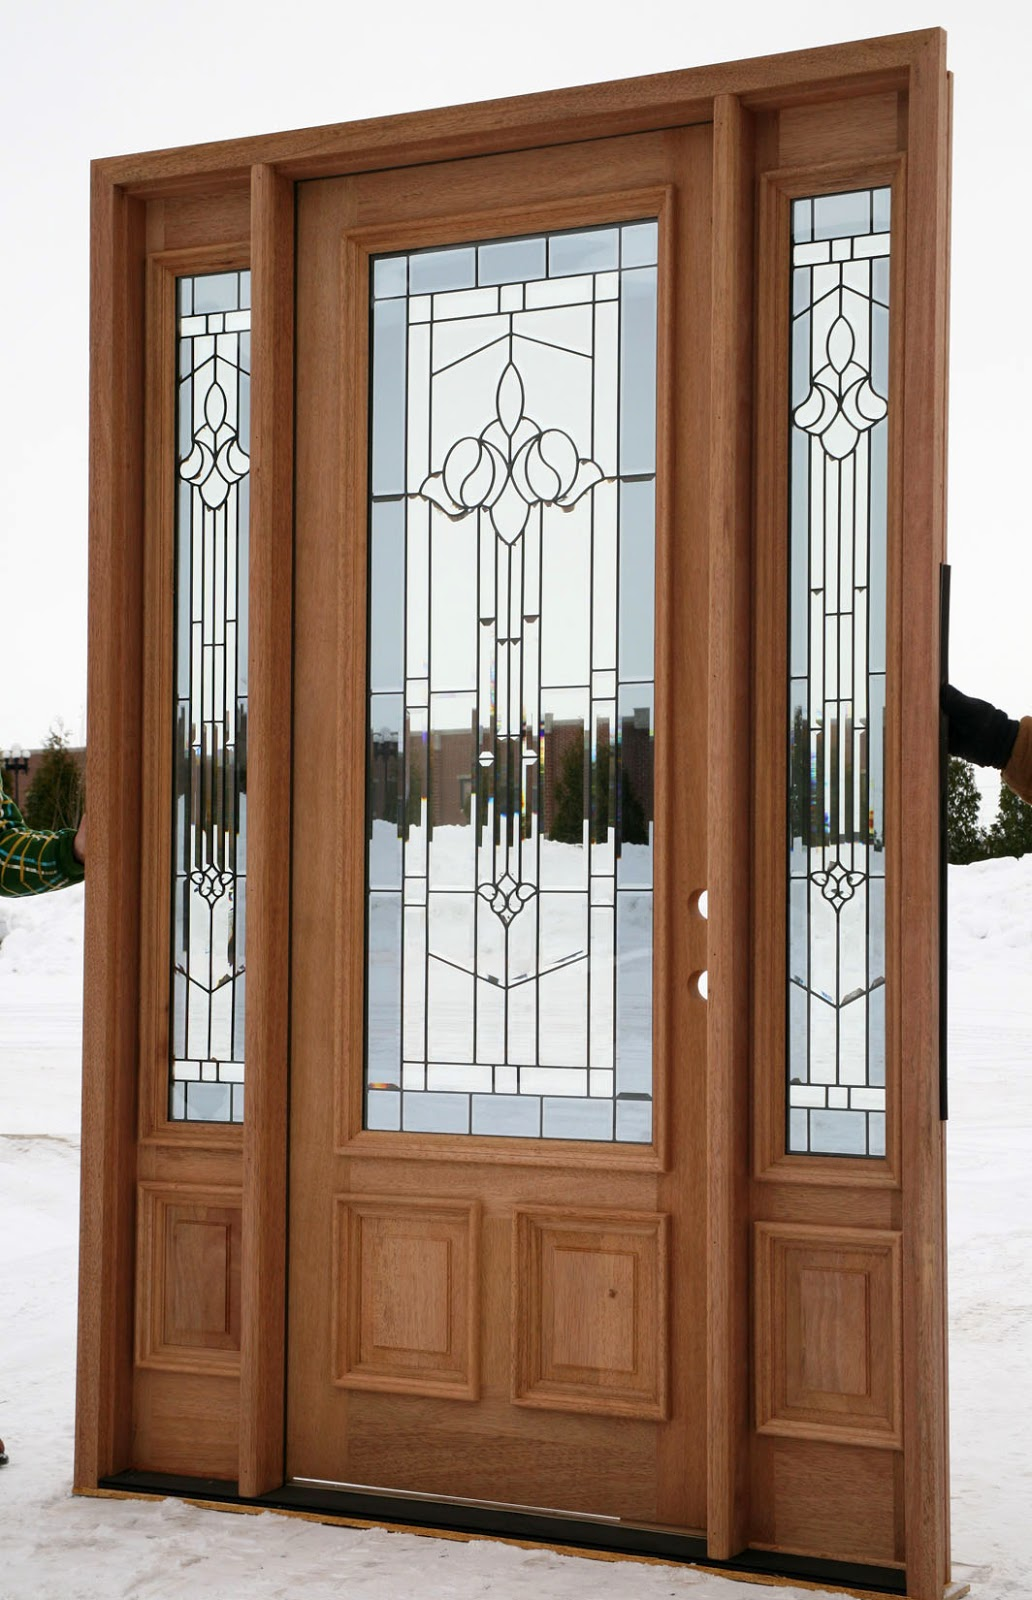 5 Front Entry Doors With Sidelights Ideas ~ Instant Knowledge